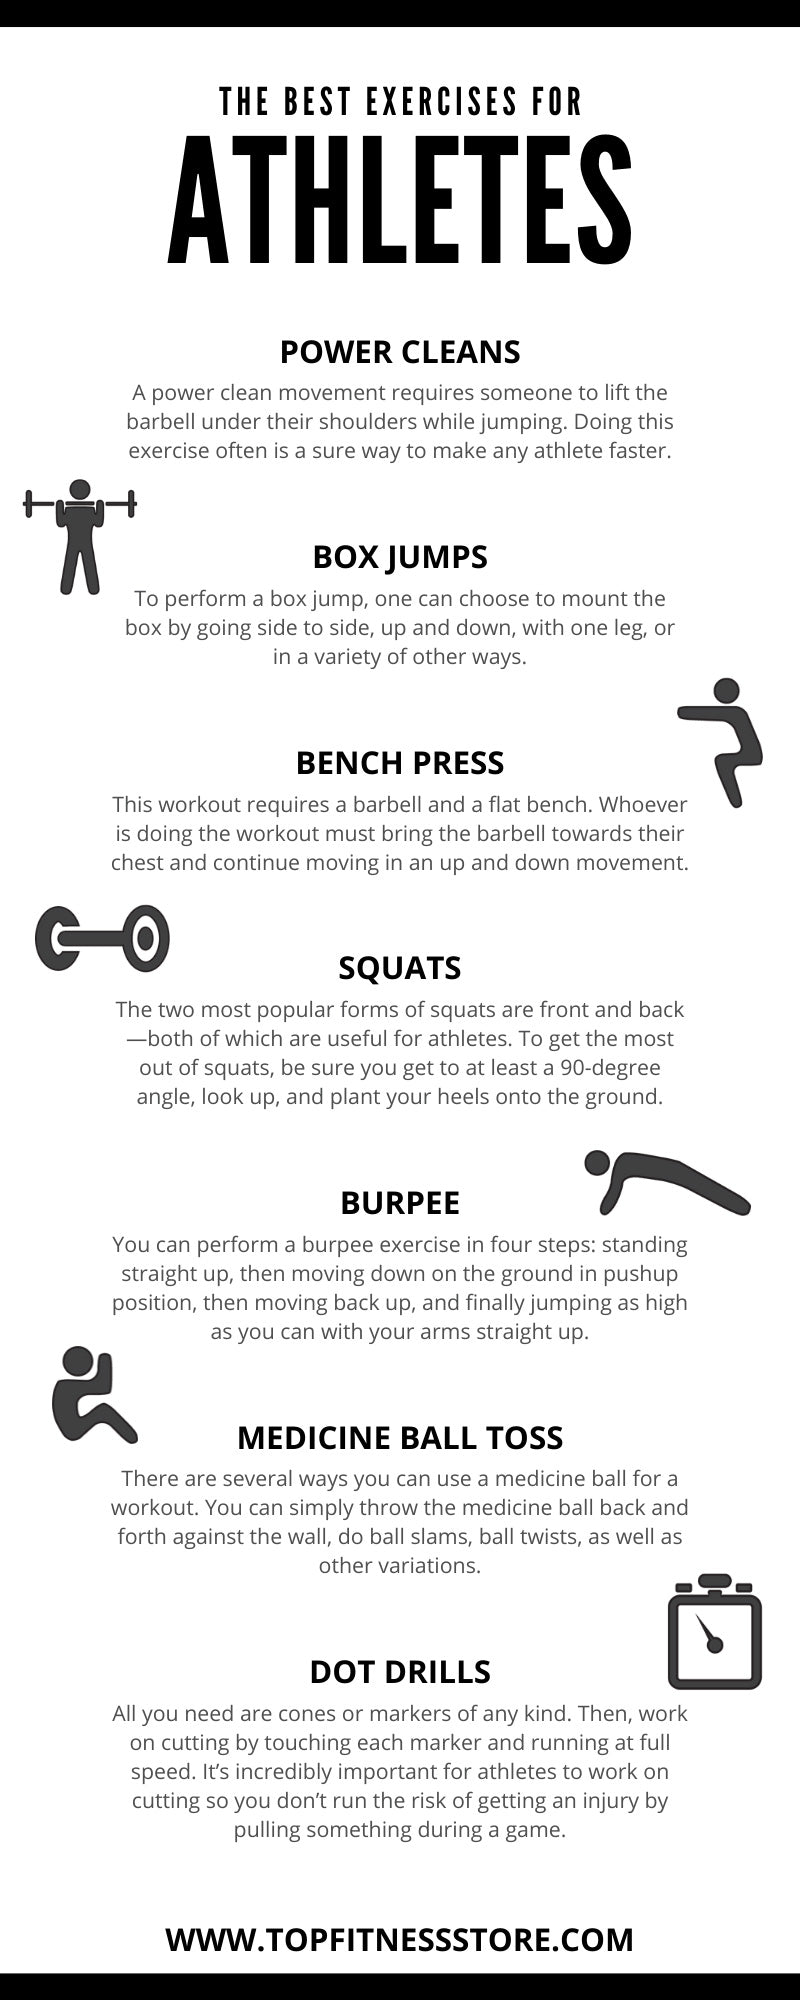 Exercises for Athletes